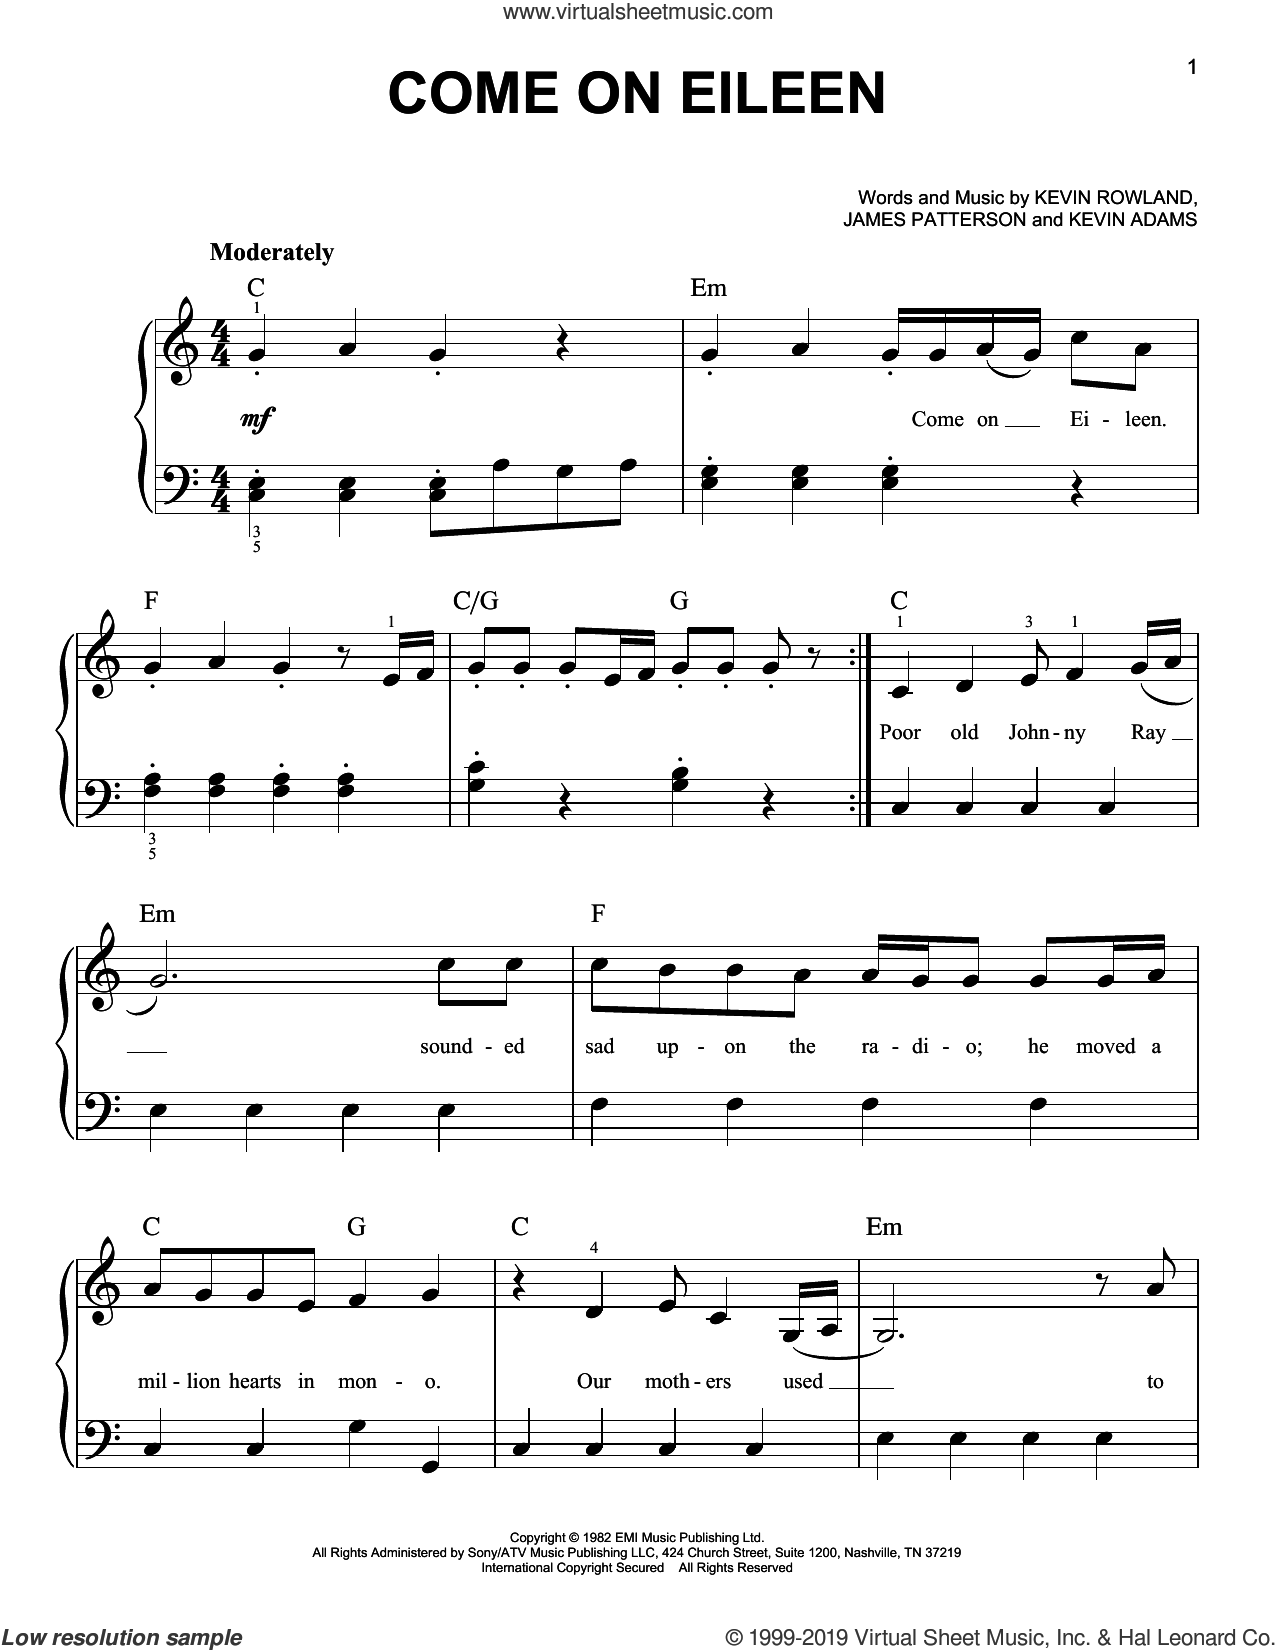 Come On Eileen sheet music for piano solo by Dexy's Midnight Runners, James Patterson, Kevin Adams and Kevin Rowland, easy skill level